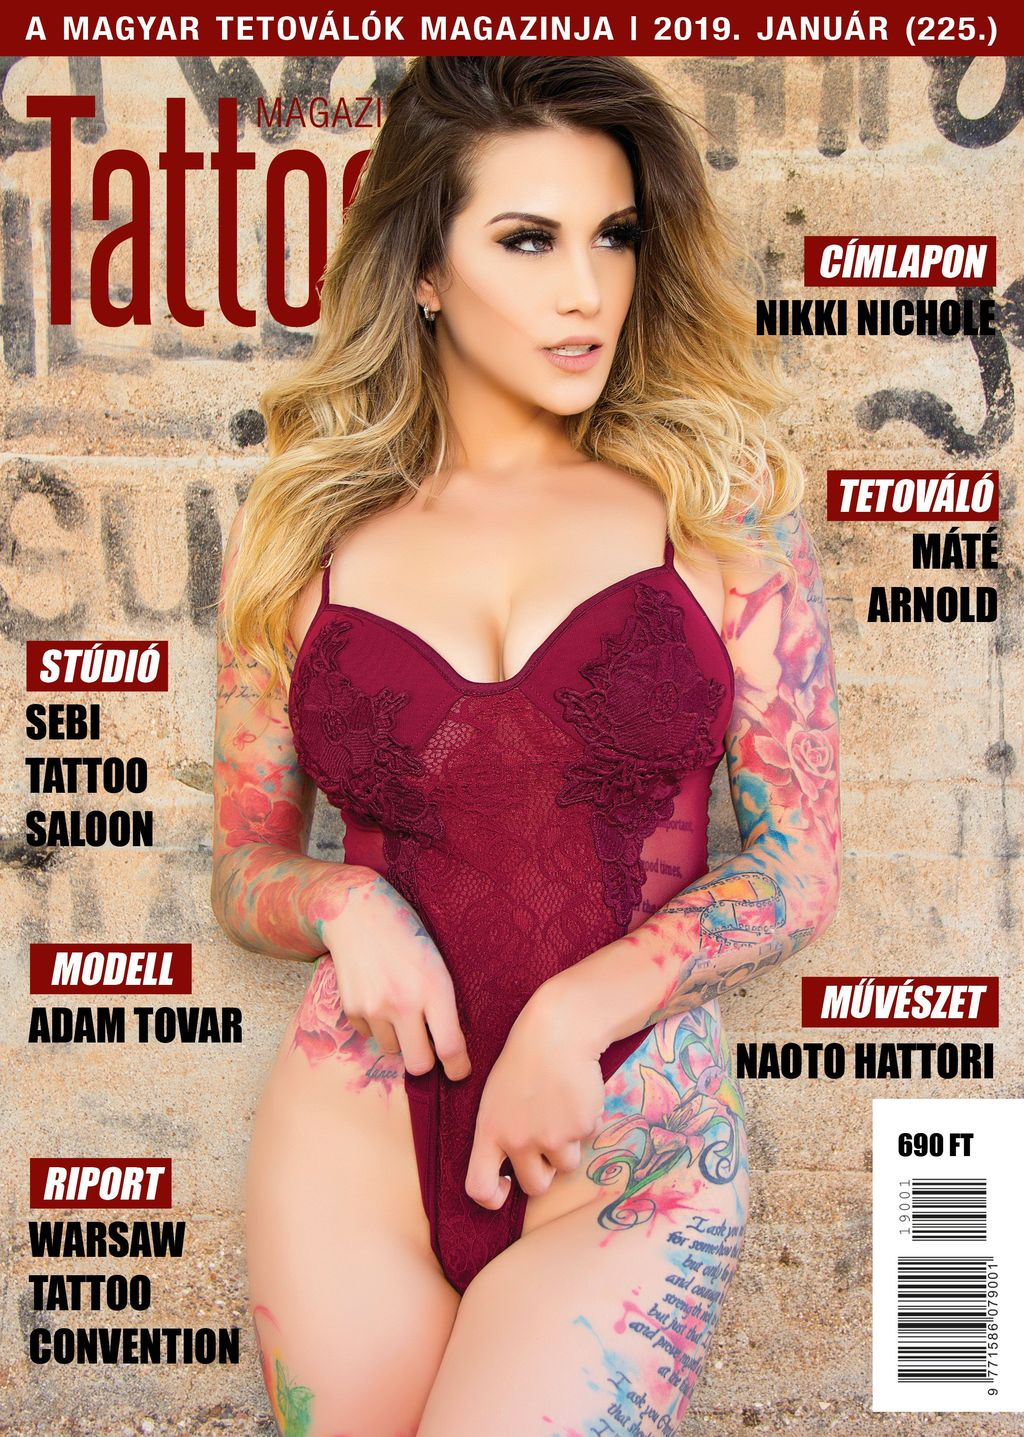 Tattoo Magazin 2019. január (225.)